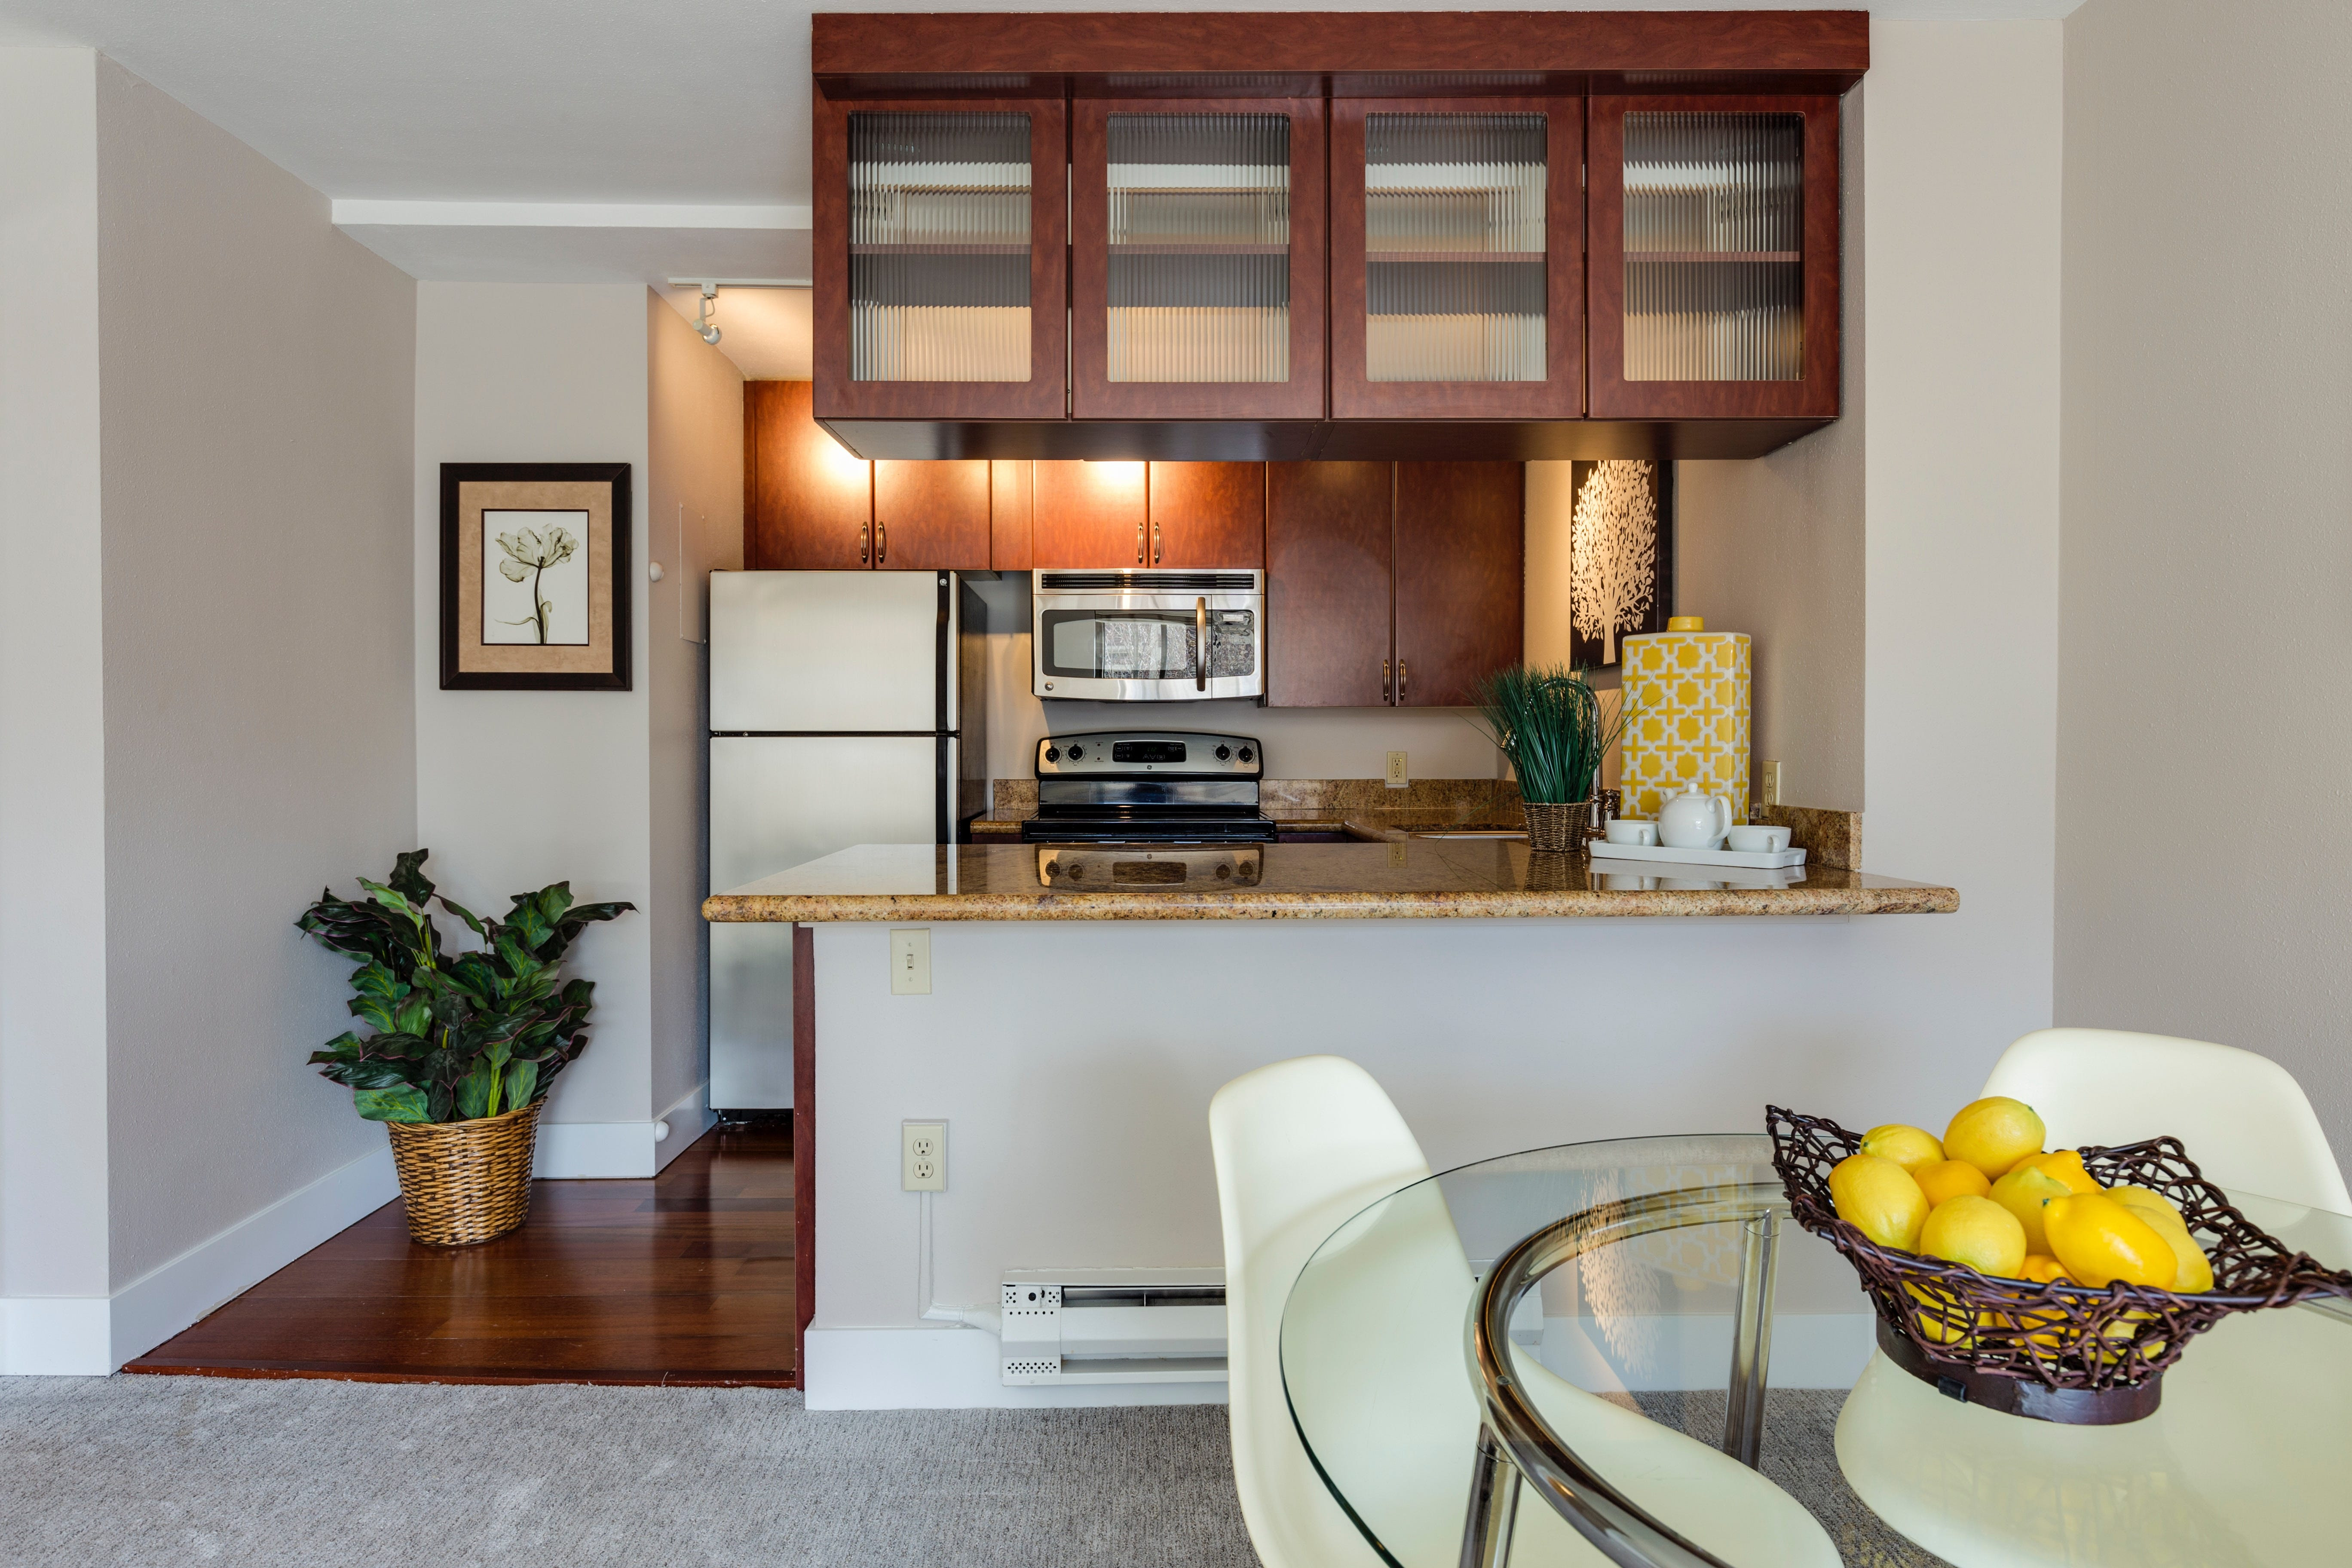 The Best Remodeling Tips For Small Kitchens Proline Blog